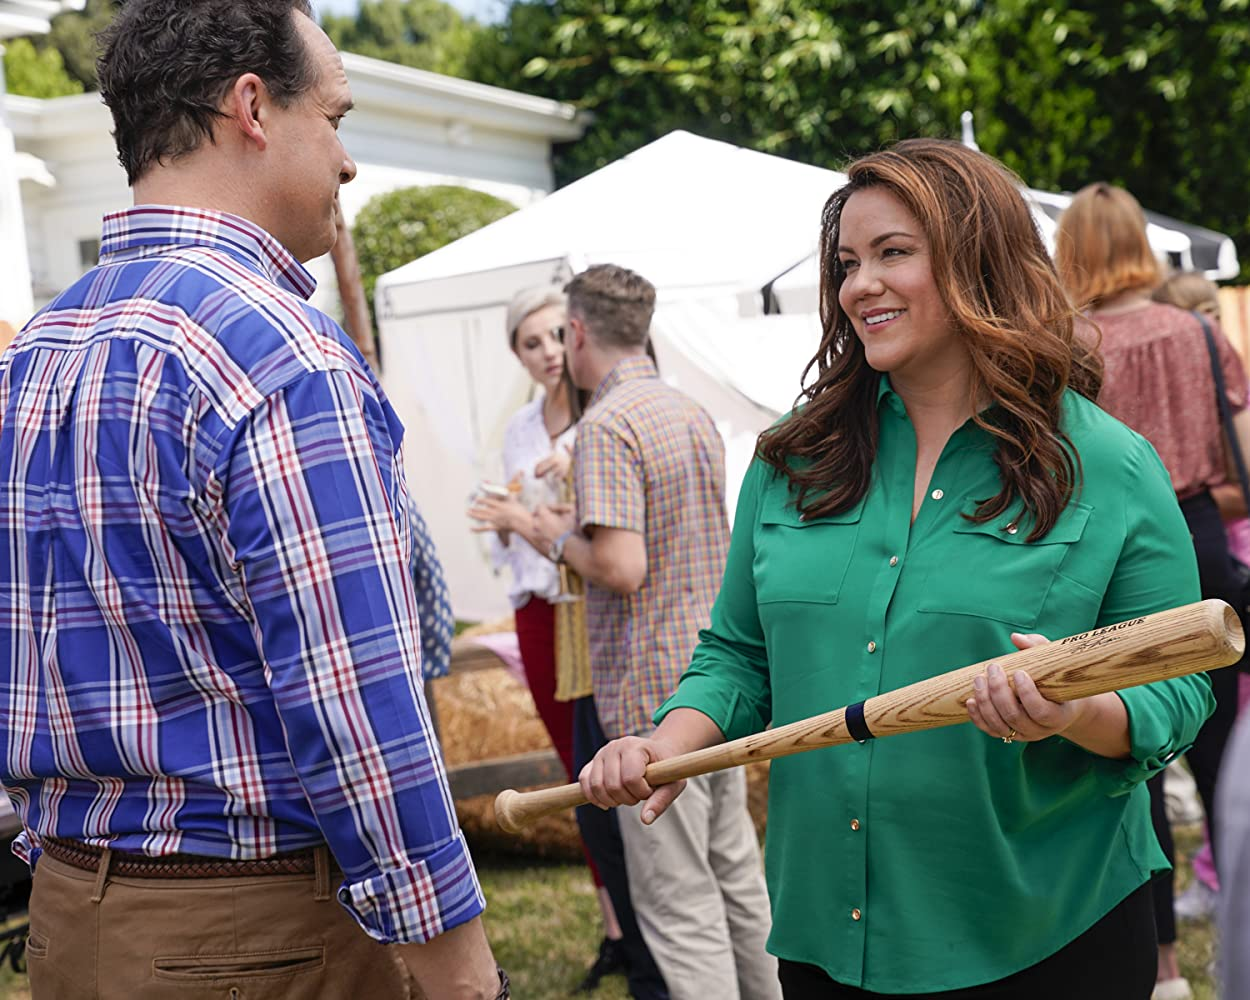 Diedrich Bader and Katy Mixon in Bed, Bath & Beyond Our Means (2019)